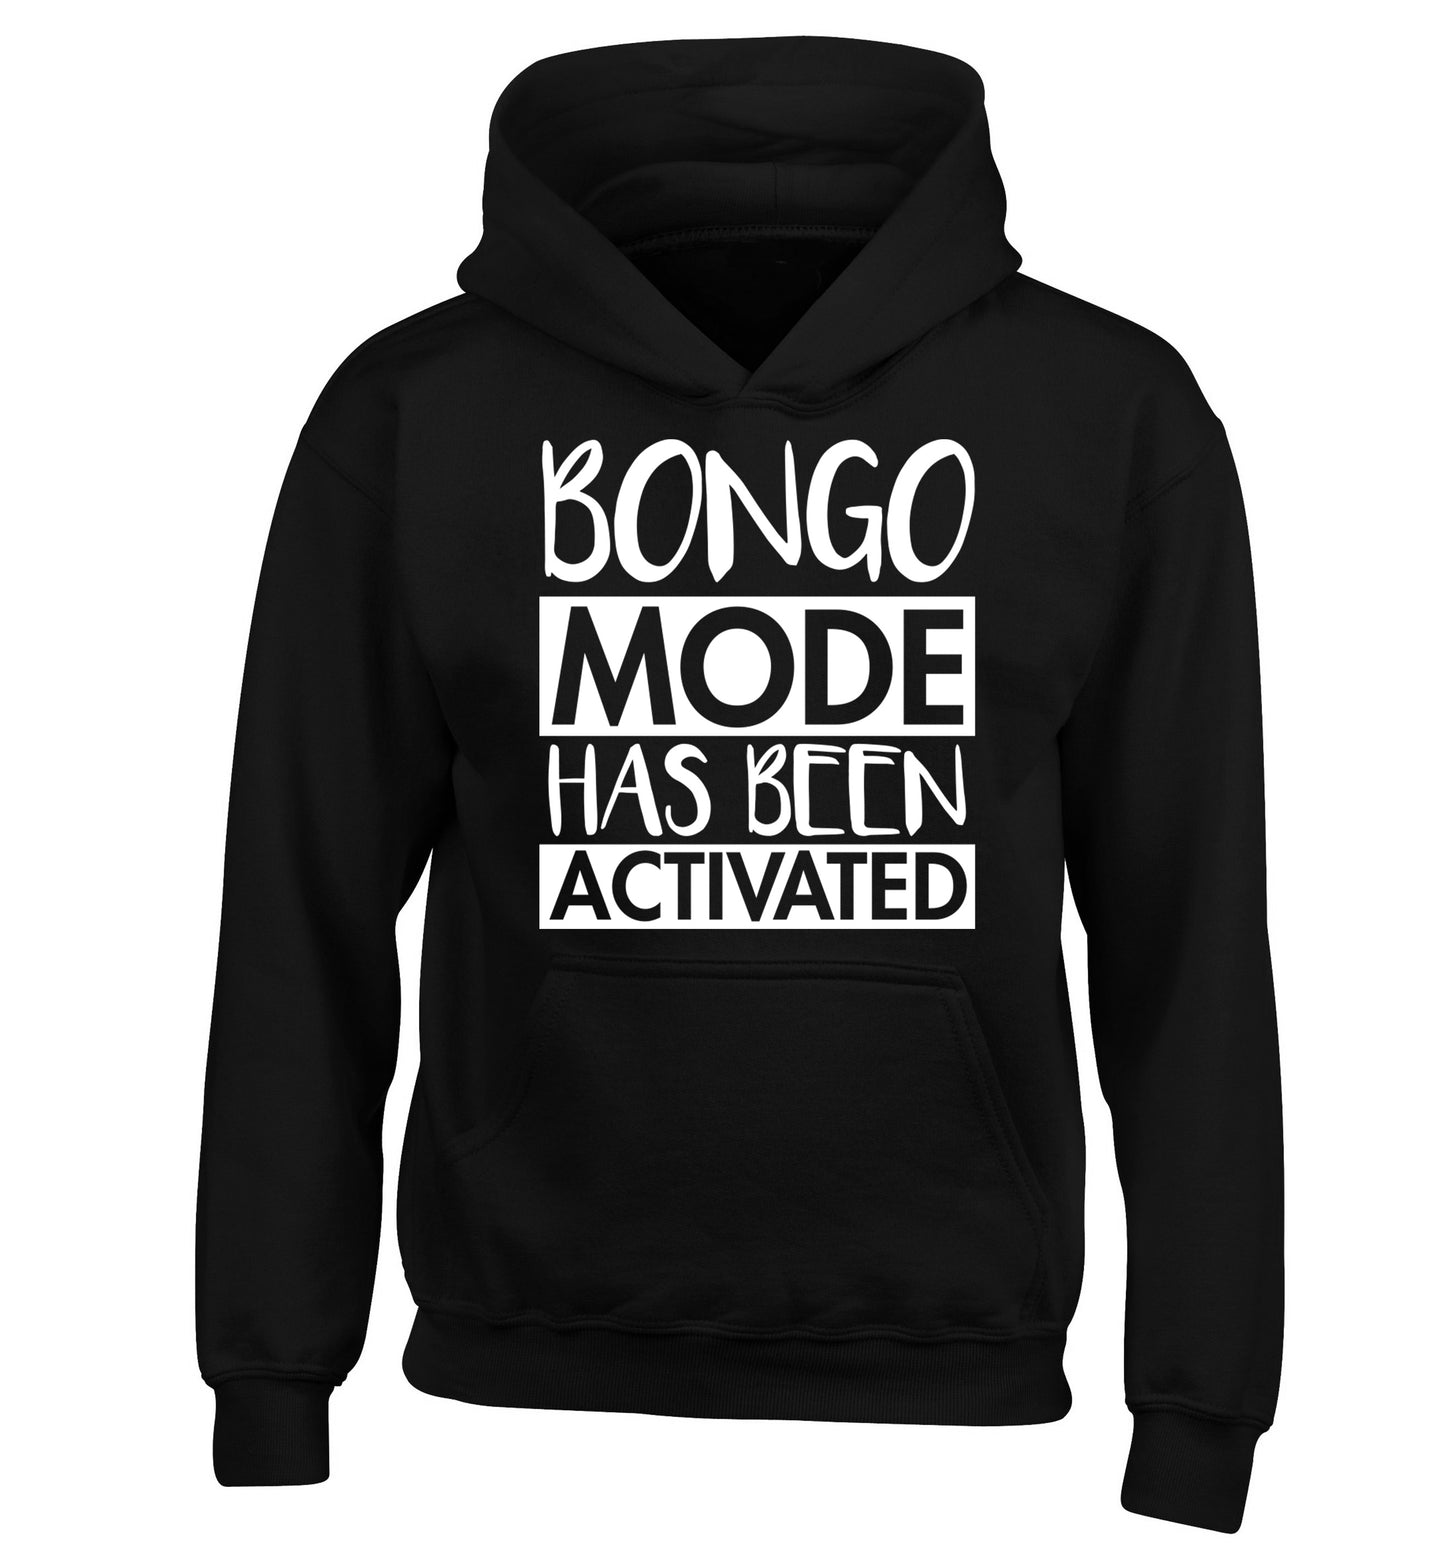 Bongo mode has been activated children's black hoodie 12-14 Years